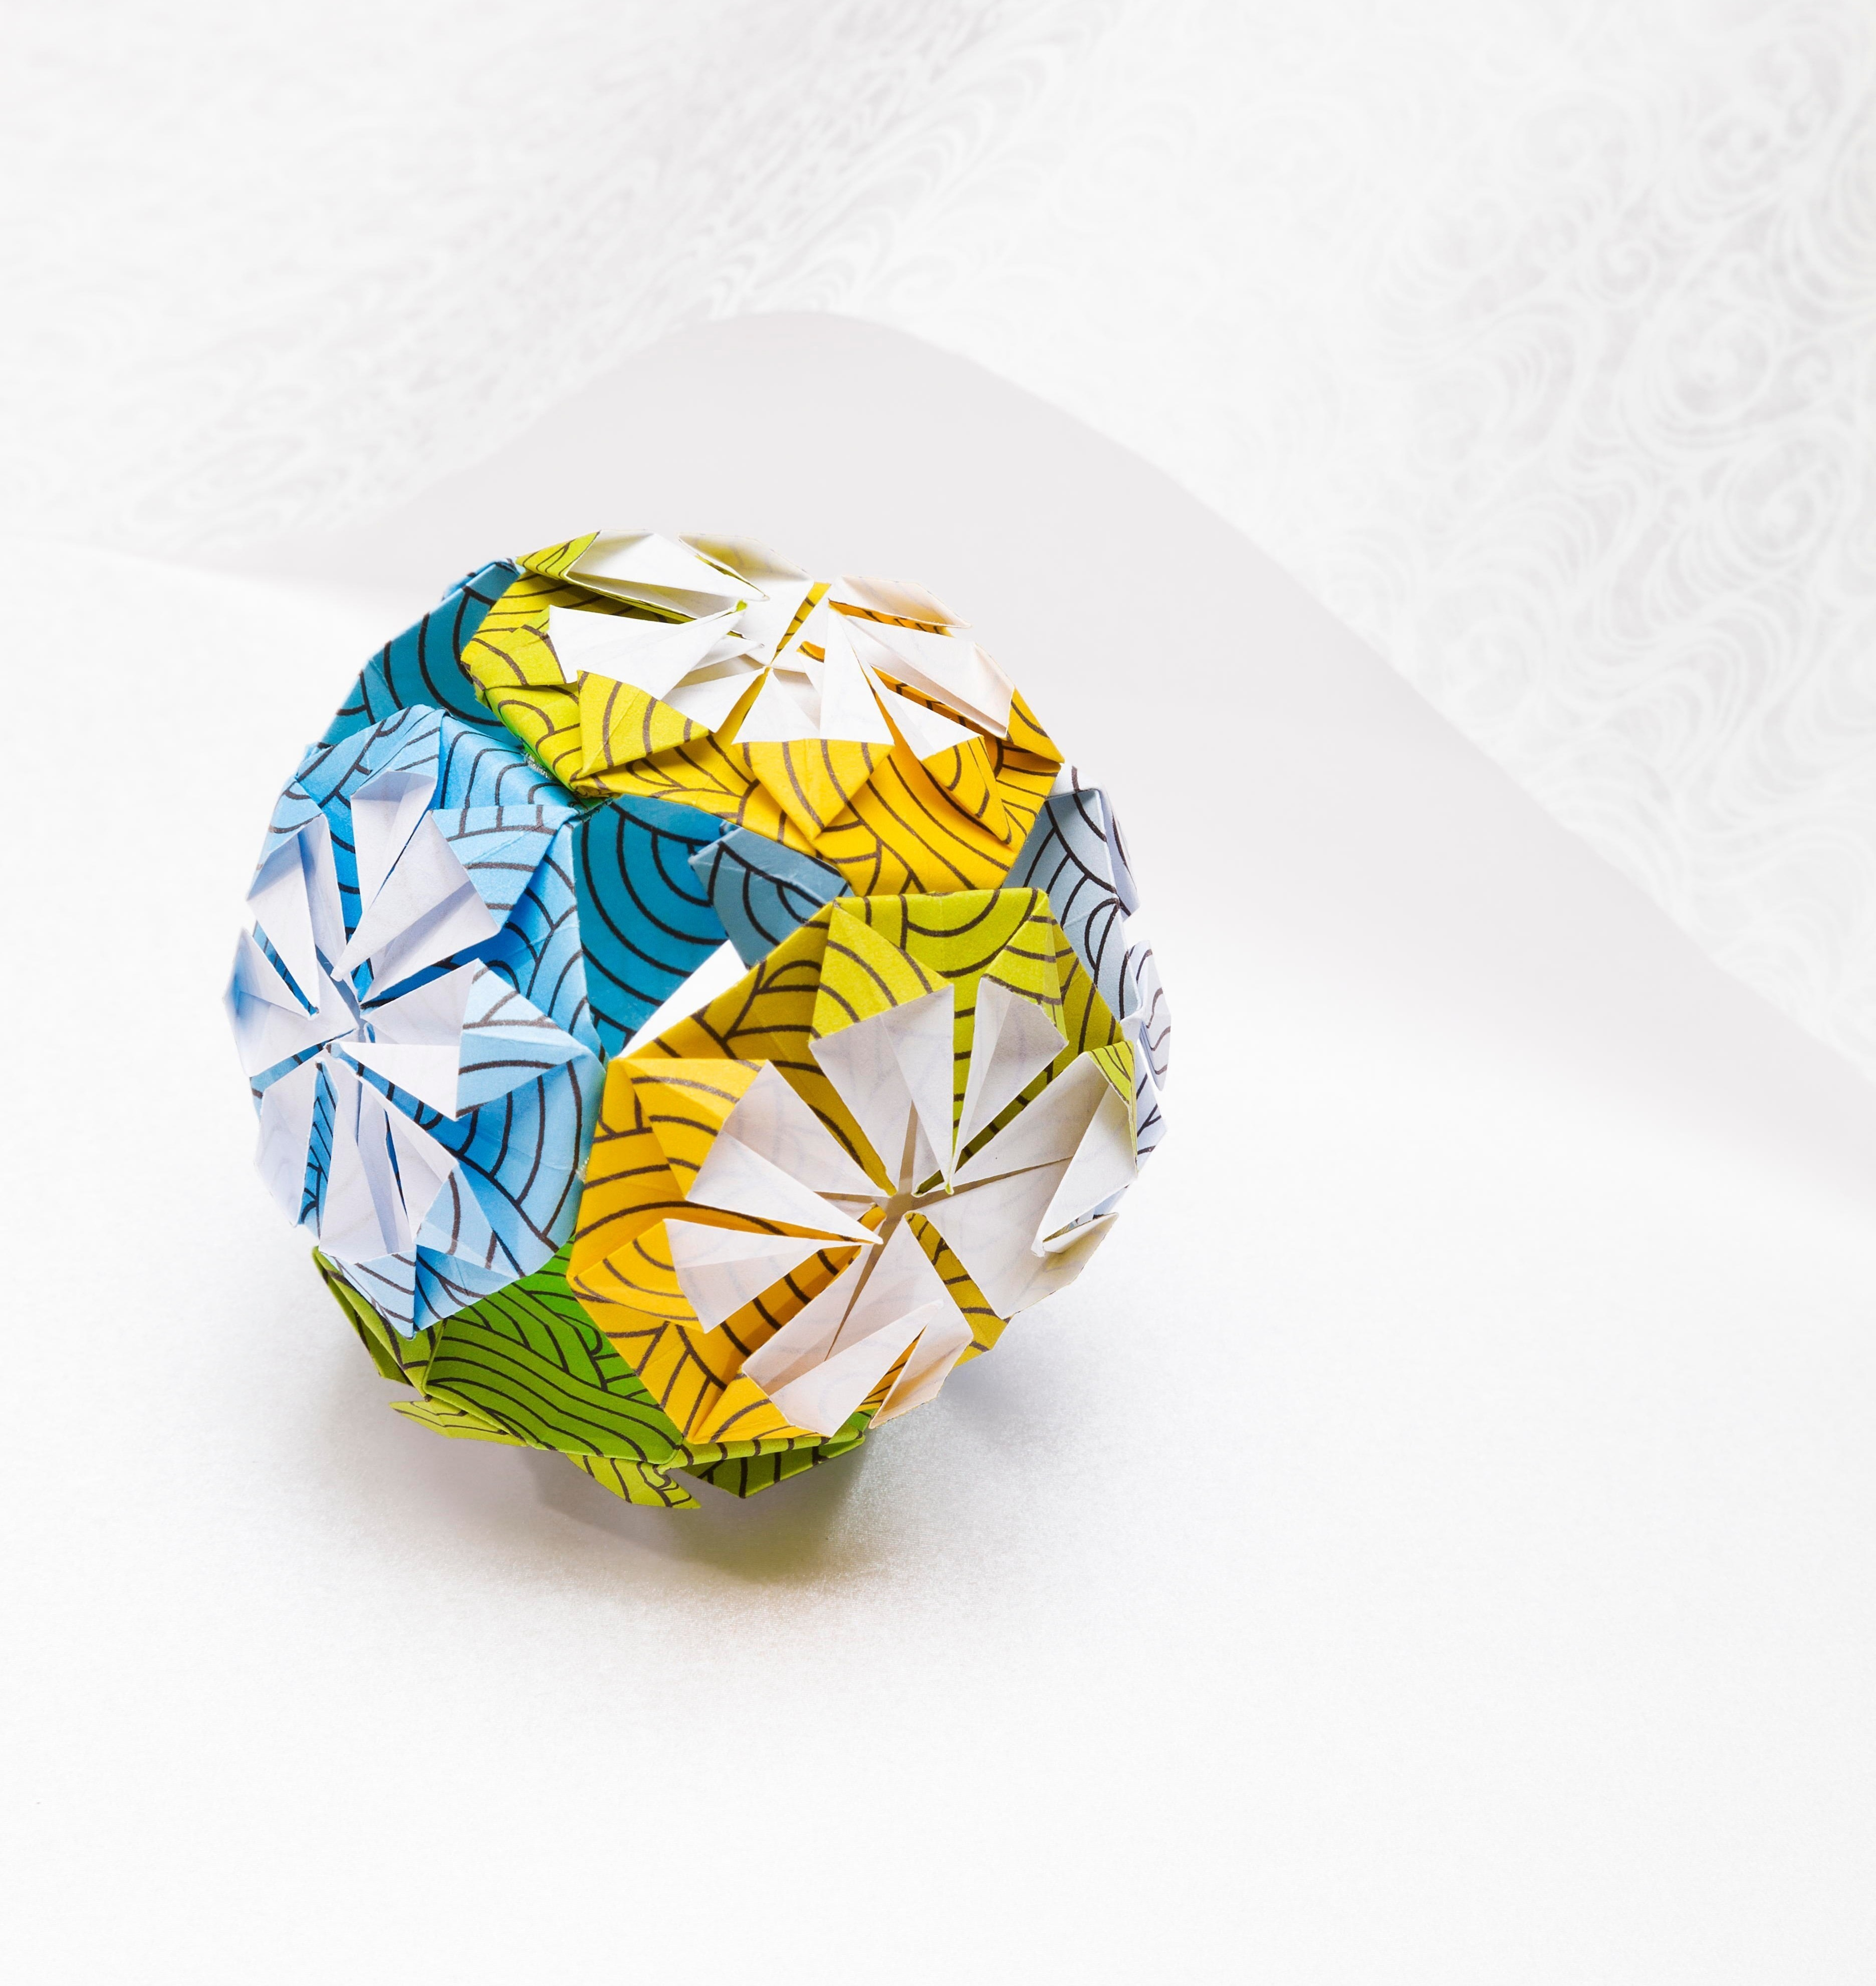 Kemari Origami Ball · Extract from Origami for Mindfulness ... - photo#22